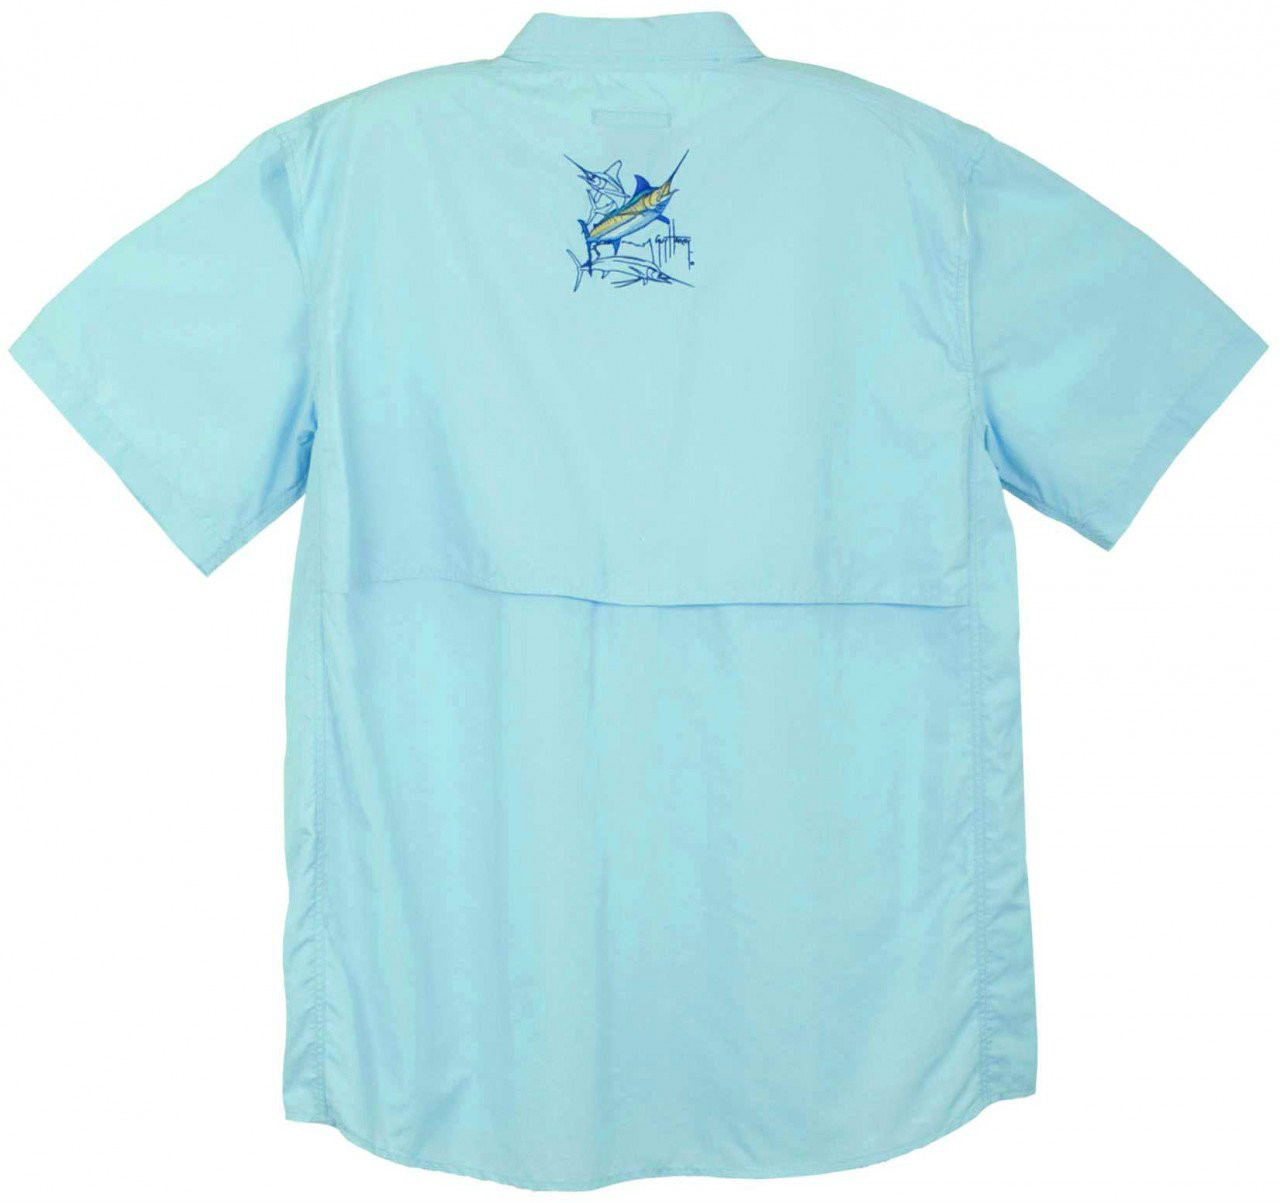 guy harvey grand slam technical shirt